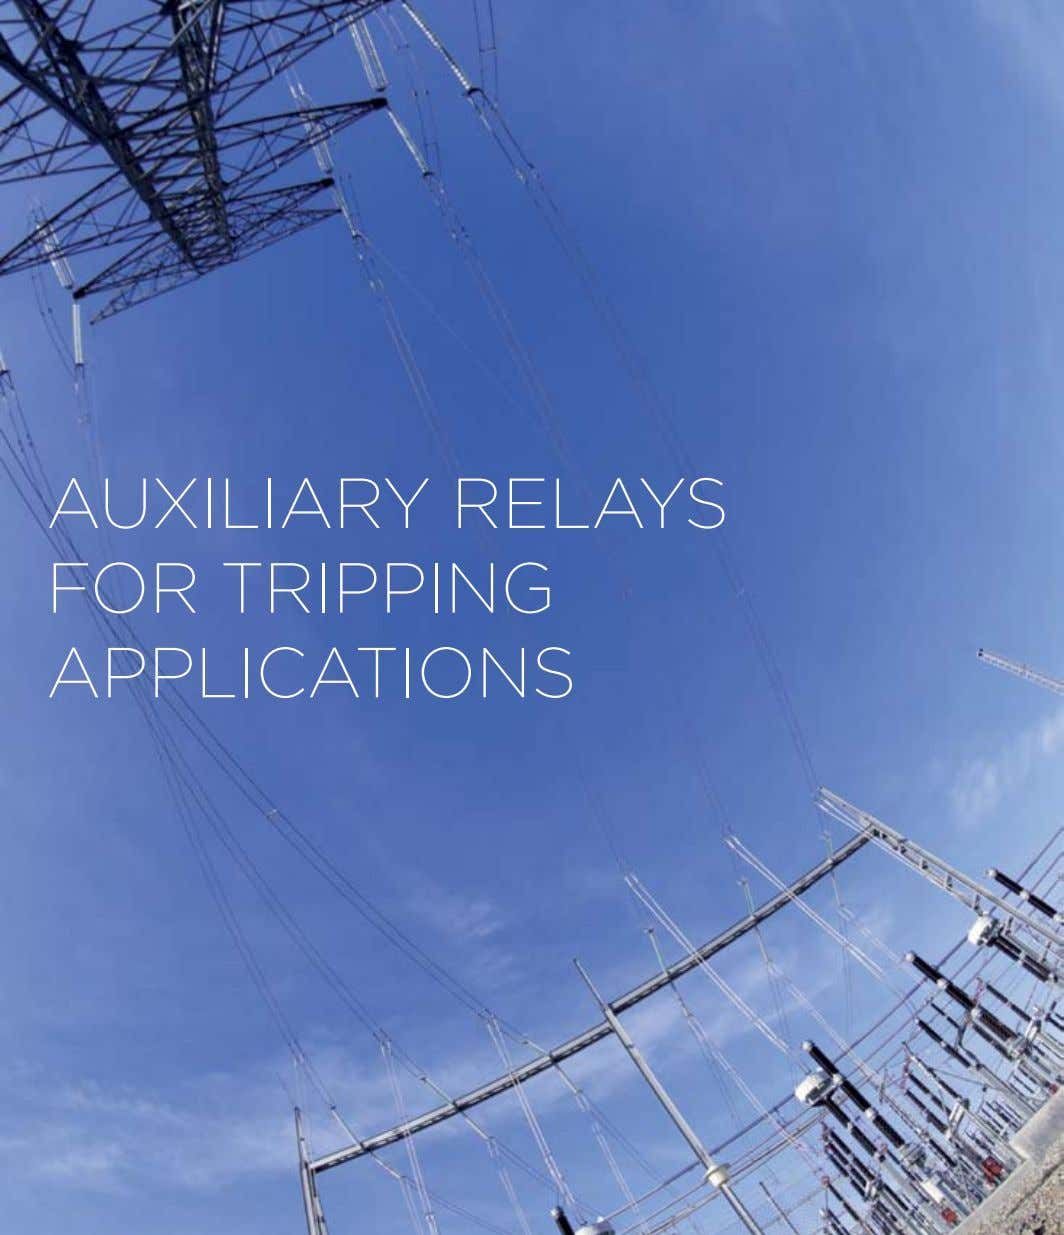 AUXILIARY RELAYS FOR TRIPPING APPLICATIONS